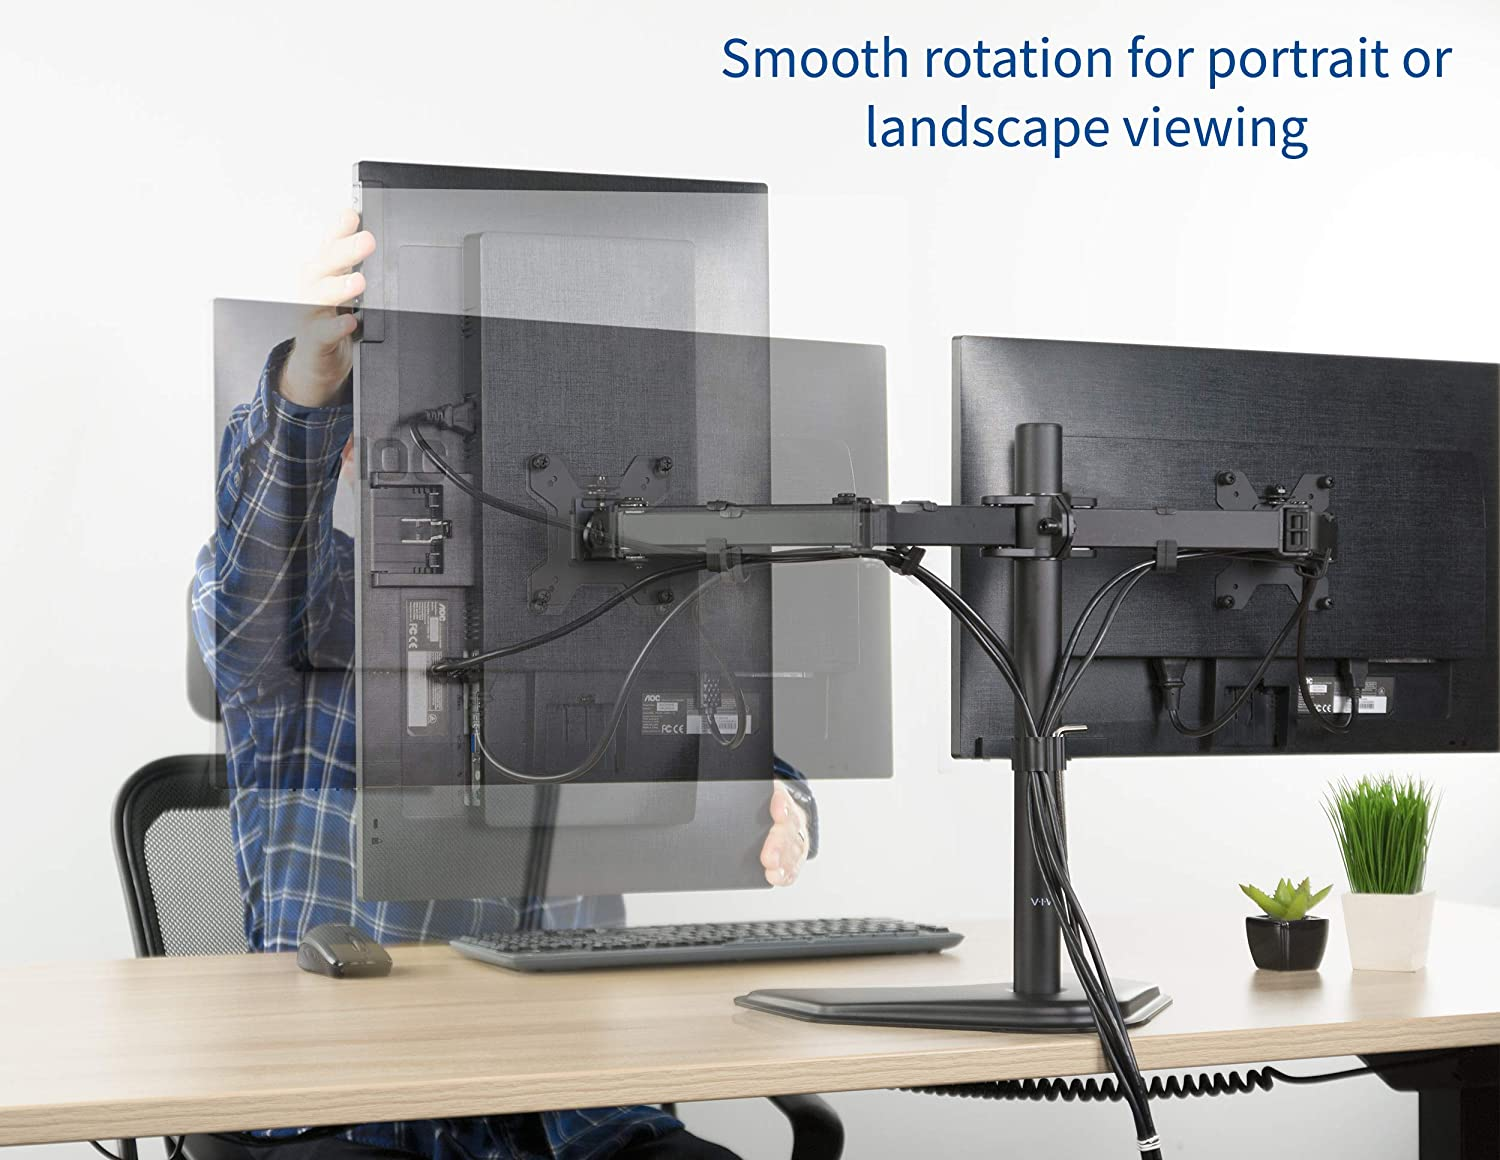 VIVO Dual LED LCD Monitor Free-Standing Desk Stand for 2 Screens up to 27 inches VESA - 6